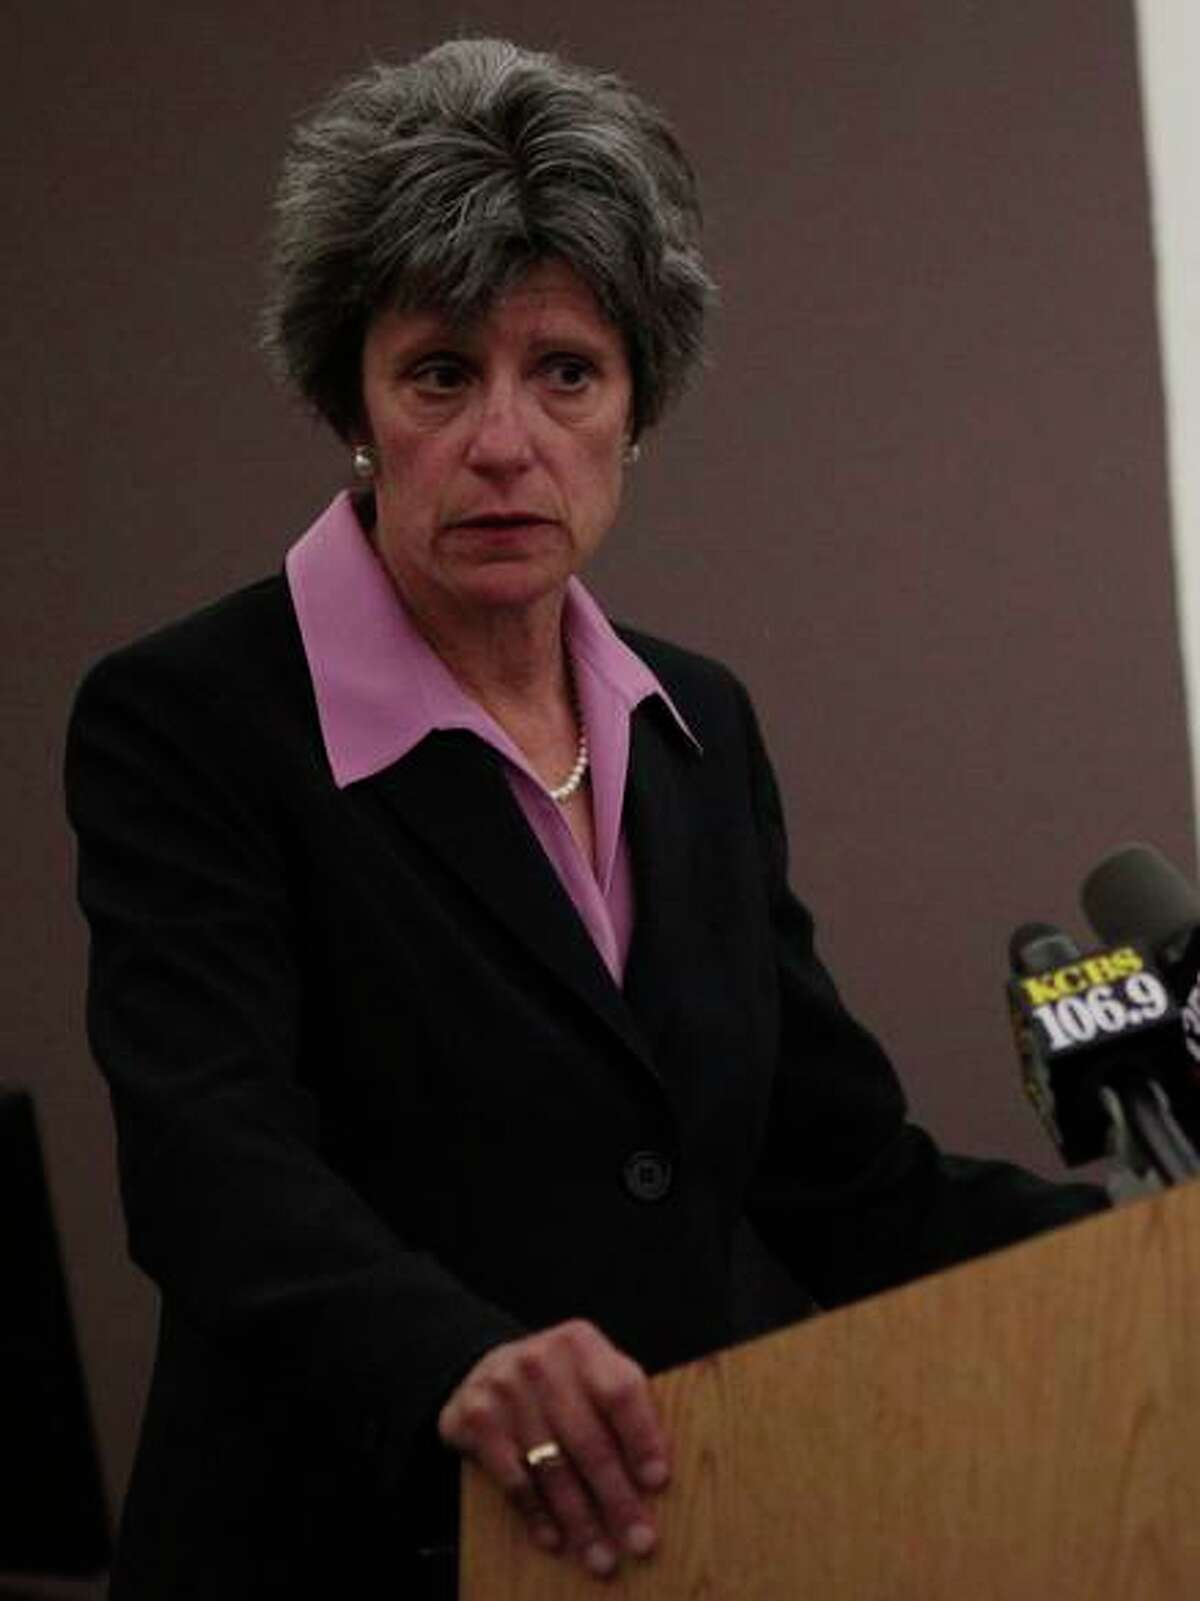 Sonoma County District Attorney Jill Ravitch at a 2014 press conference. Ravitch overwhelmingly beat back an attempt to recall her from office.